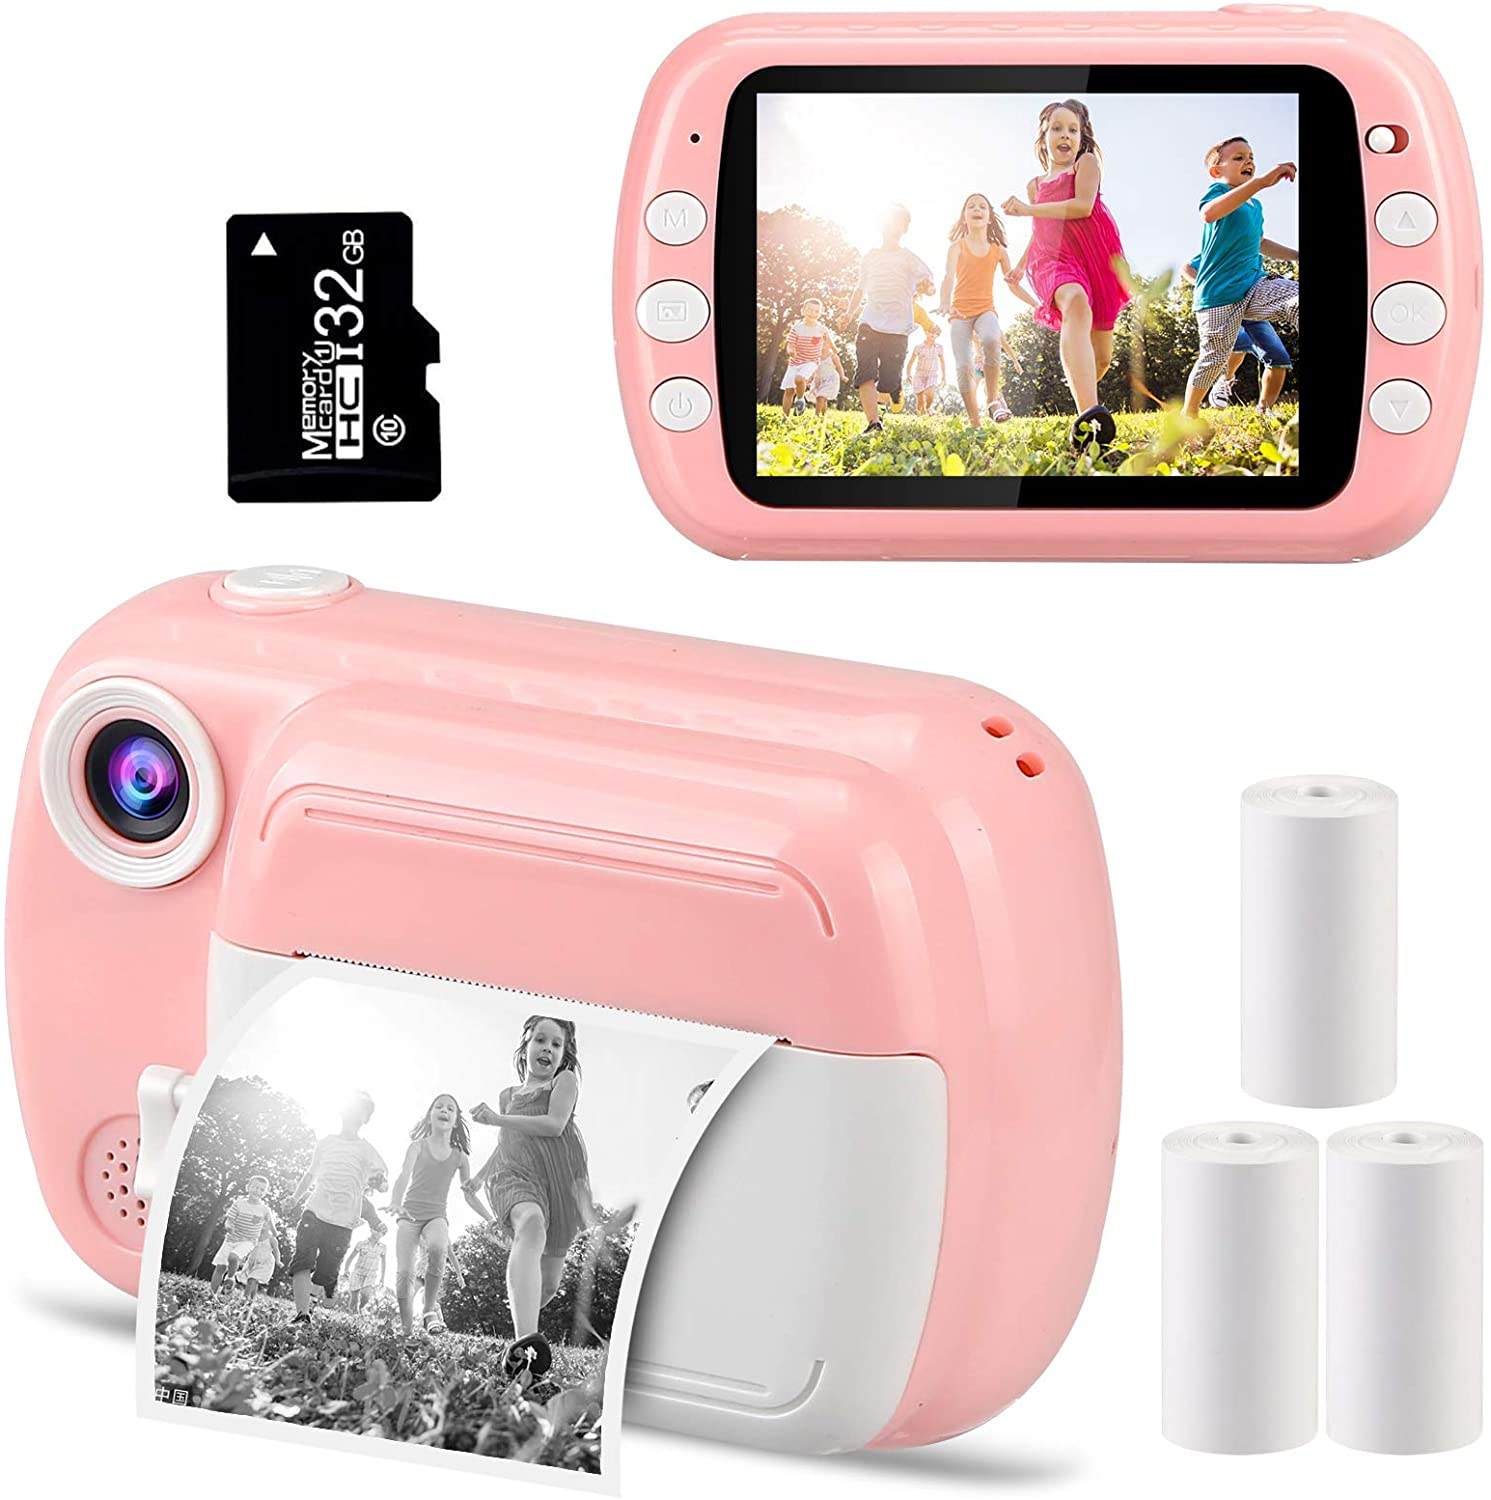 VJJB Instant Camera for Kids, 3.5-inch Screen Portable Instant Print Camera with 1080p HD Video Kids Camera Best Toy Gifts for